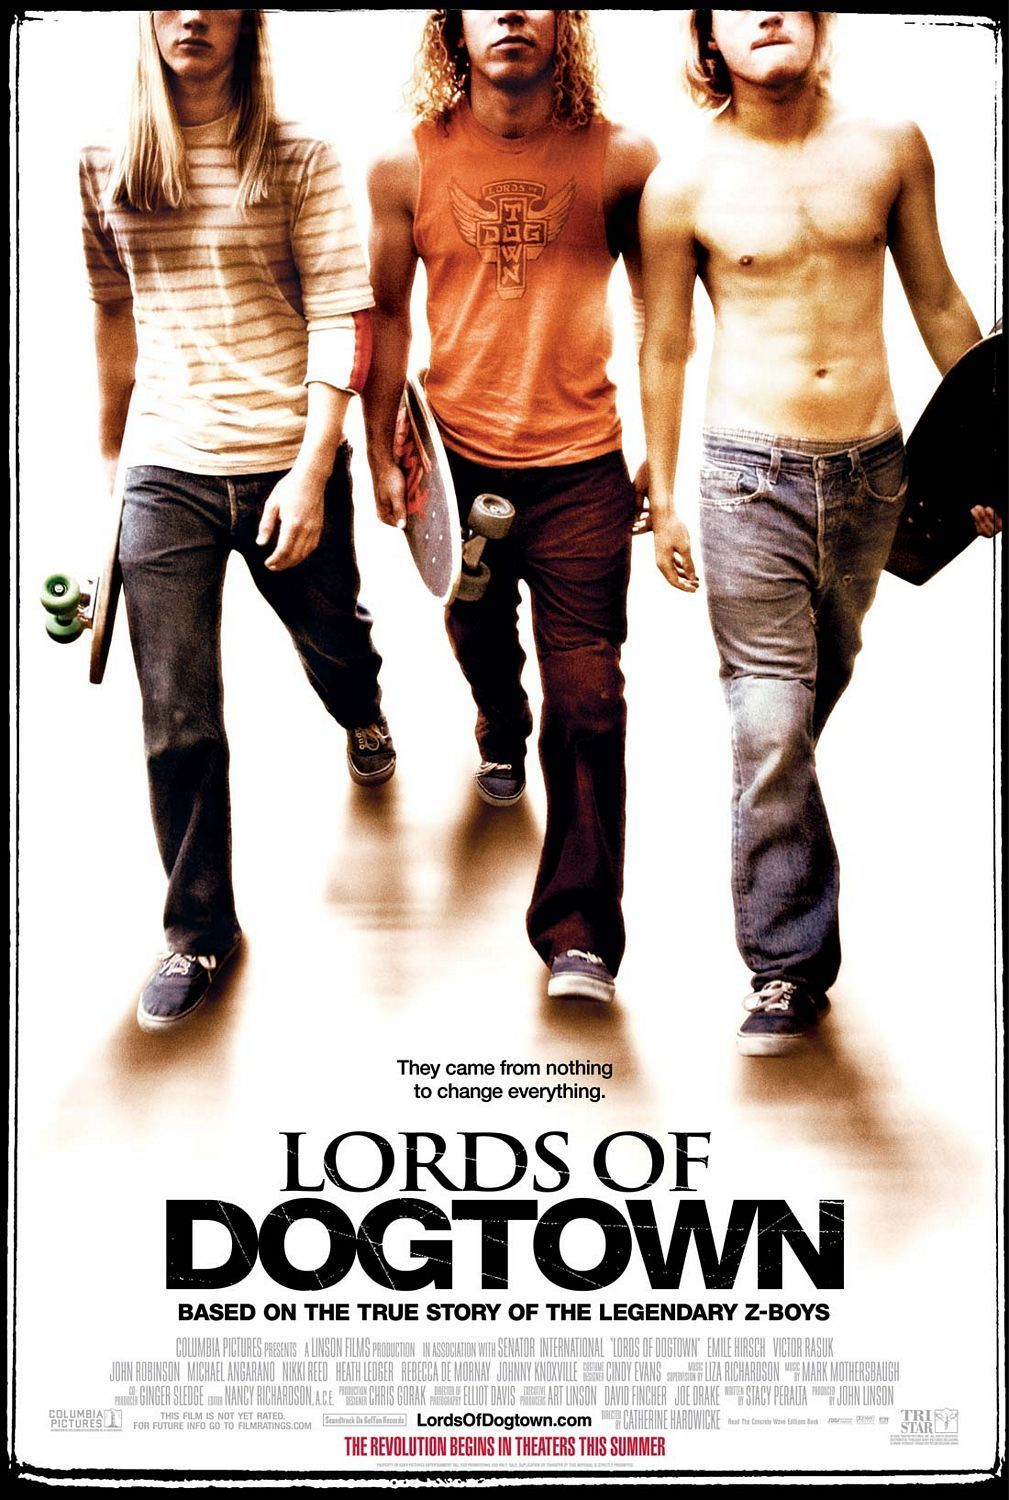 Lords-of-Dogtown-Poster-lords-of-dogtown-19550800-1009-1500.jpg